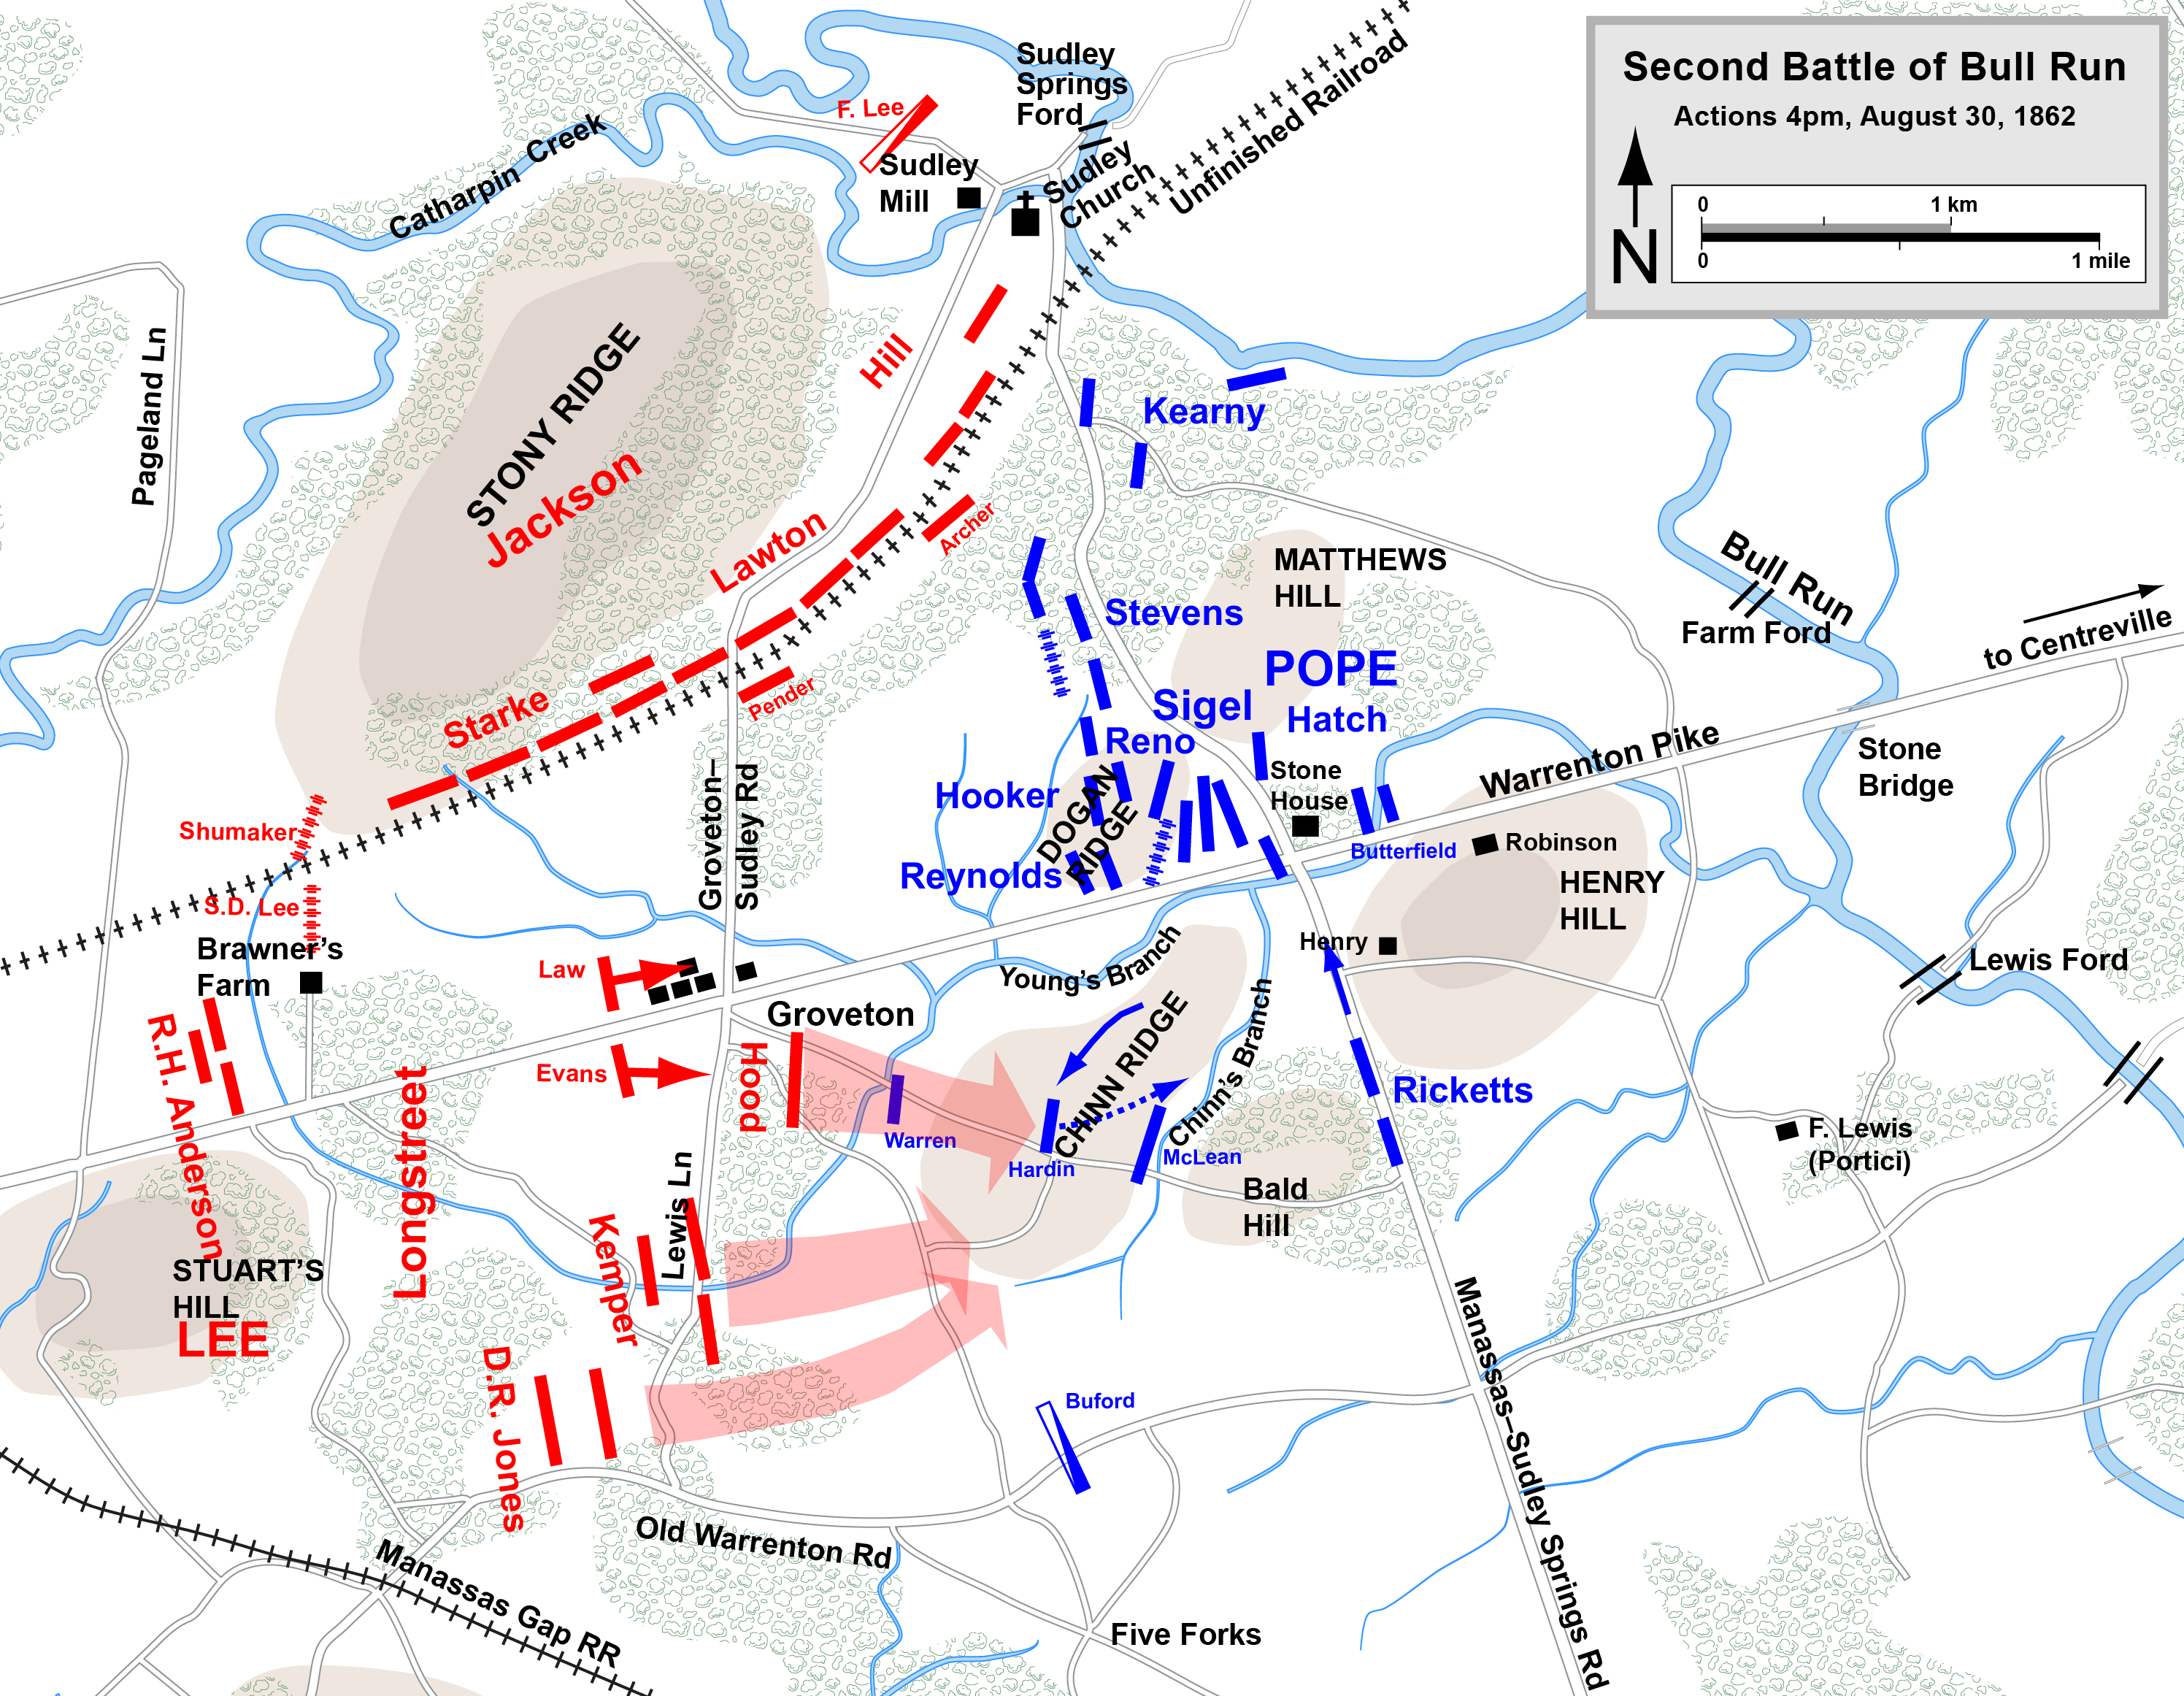 Map showing the progress of the troops during the Second Battle of Bull Run